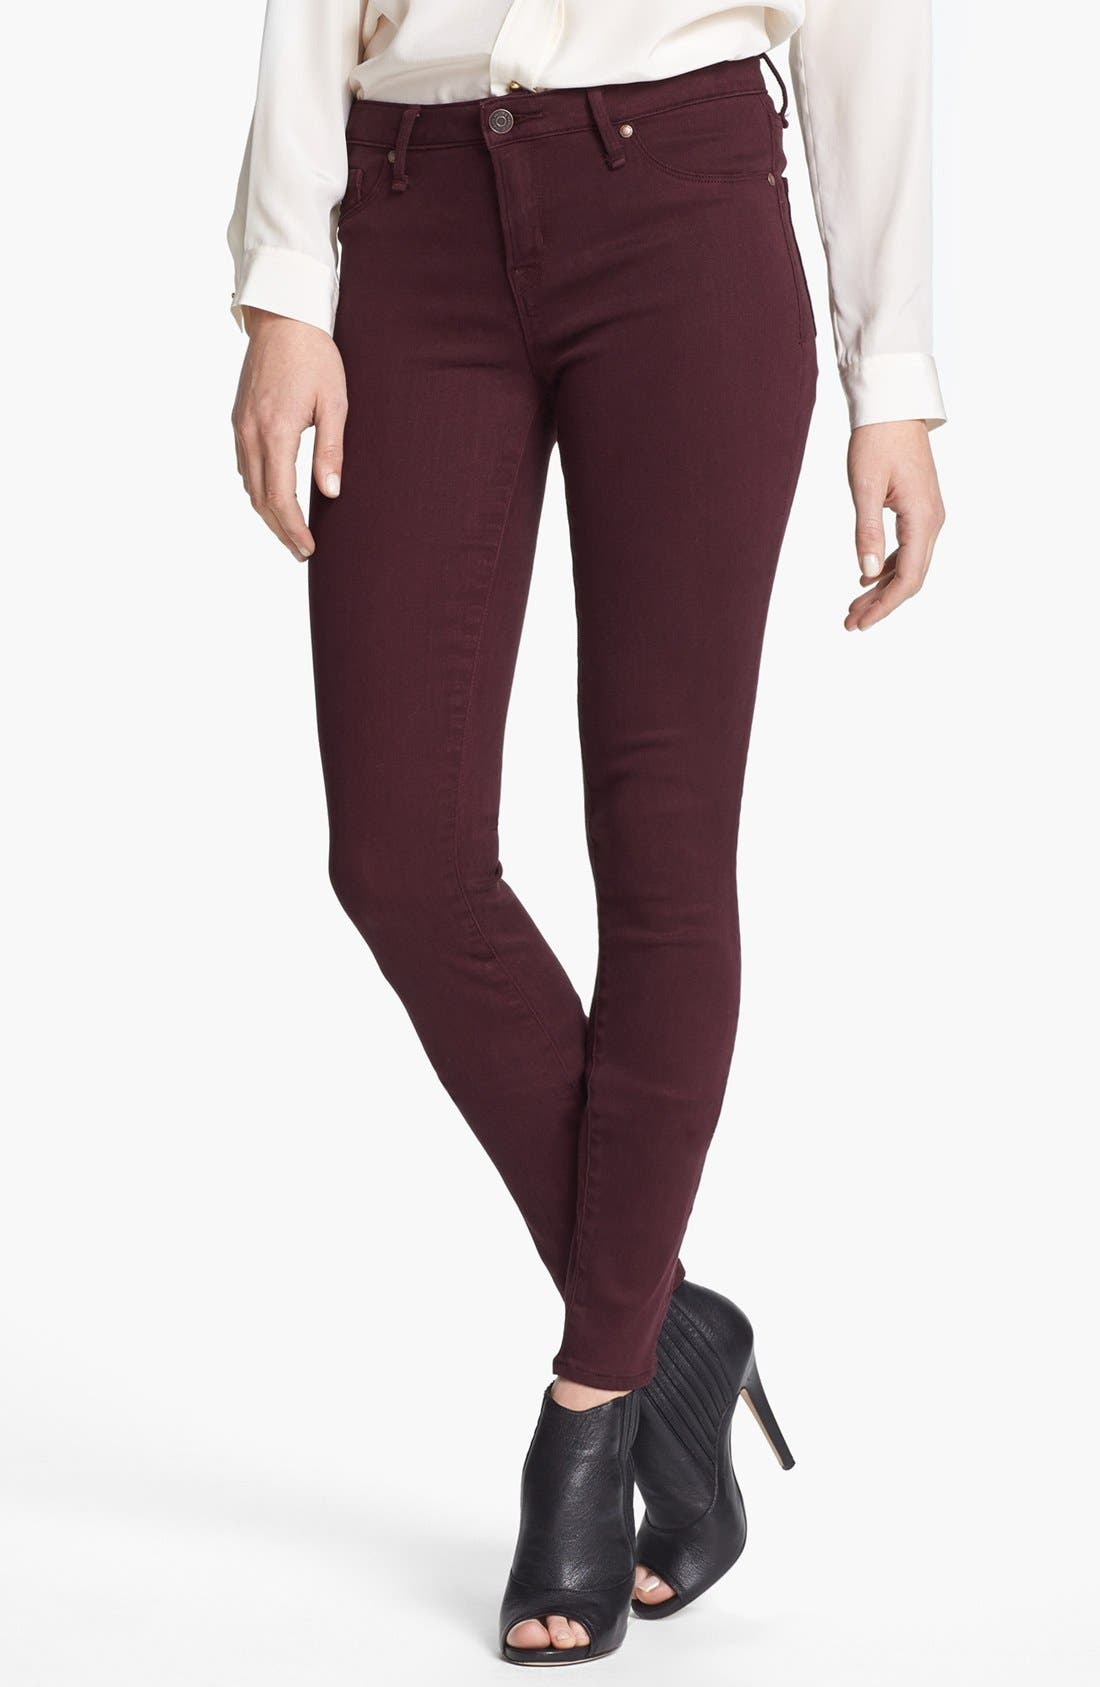 Alternate Image 1 Selected - MARC BY MARC JACOBS 'Stick' Colored Skinny Stretch Jeans (Wine Tasting)